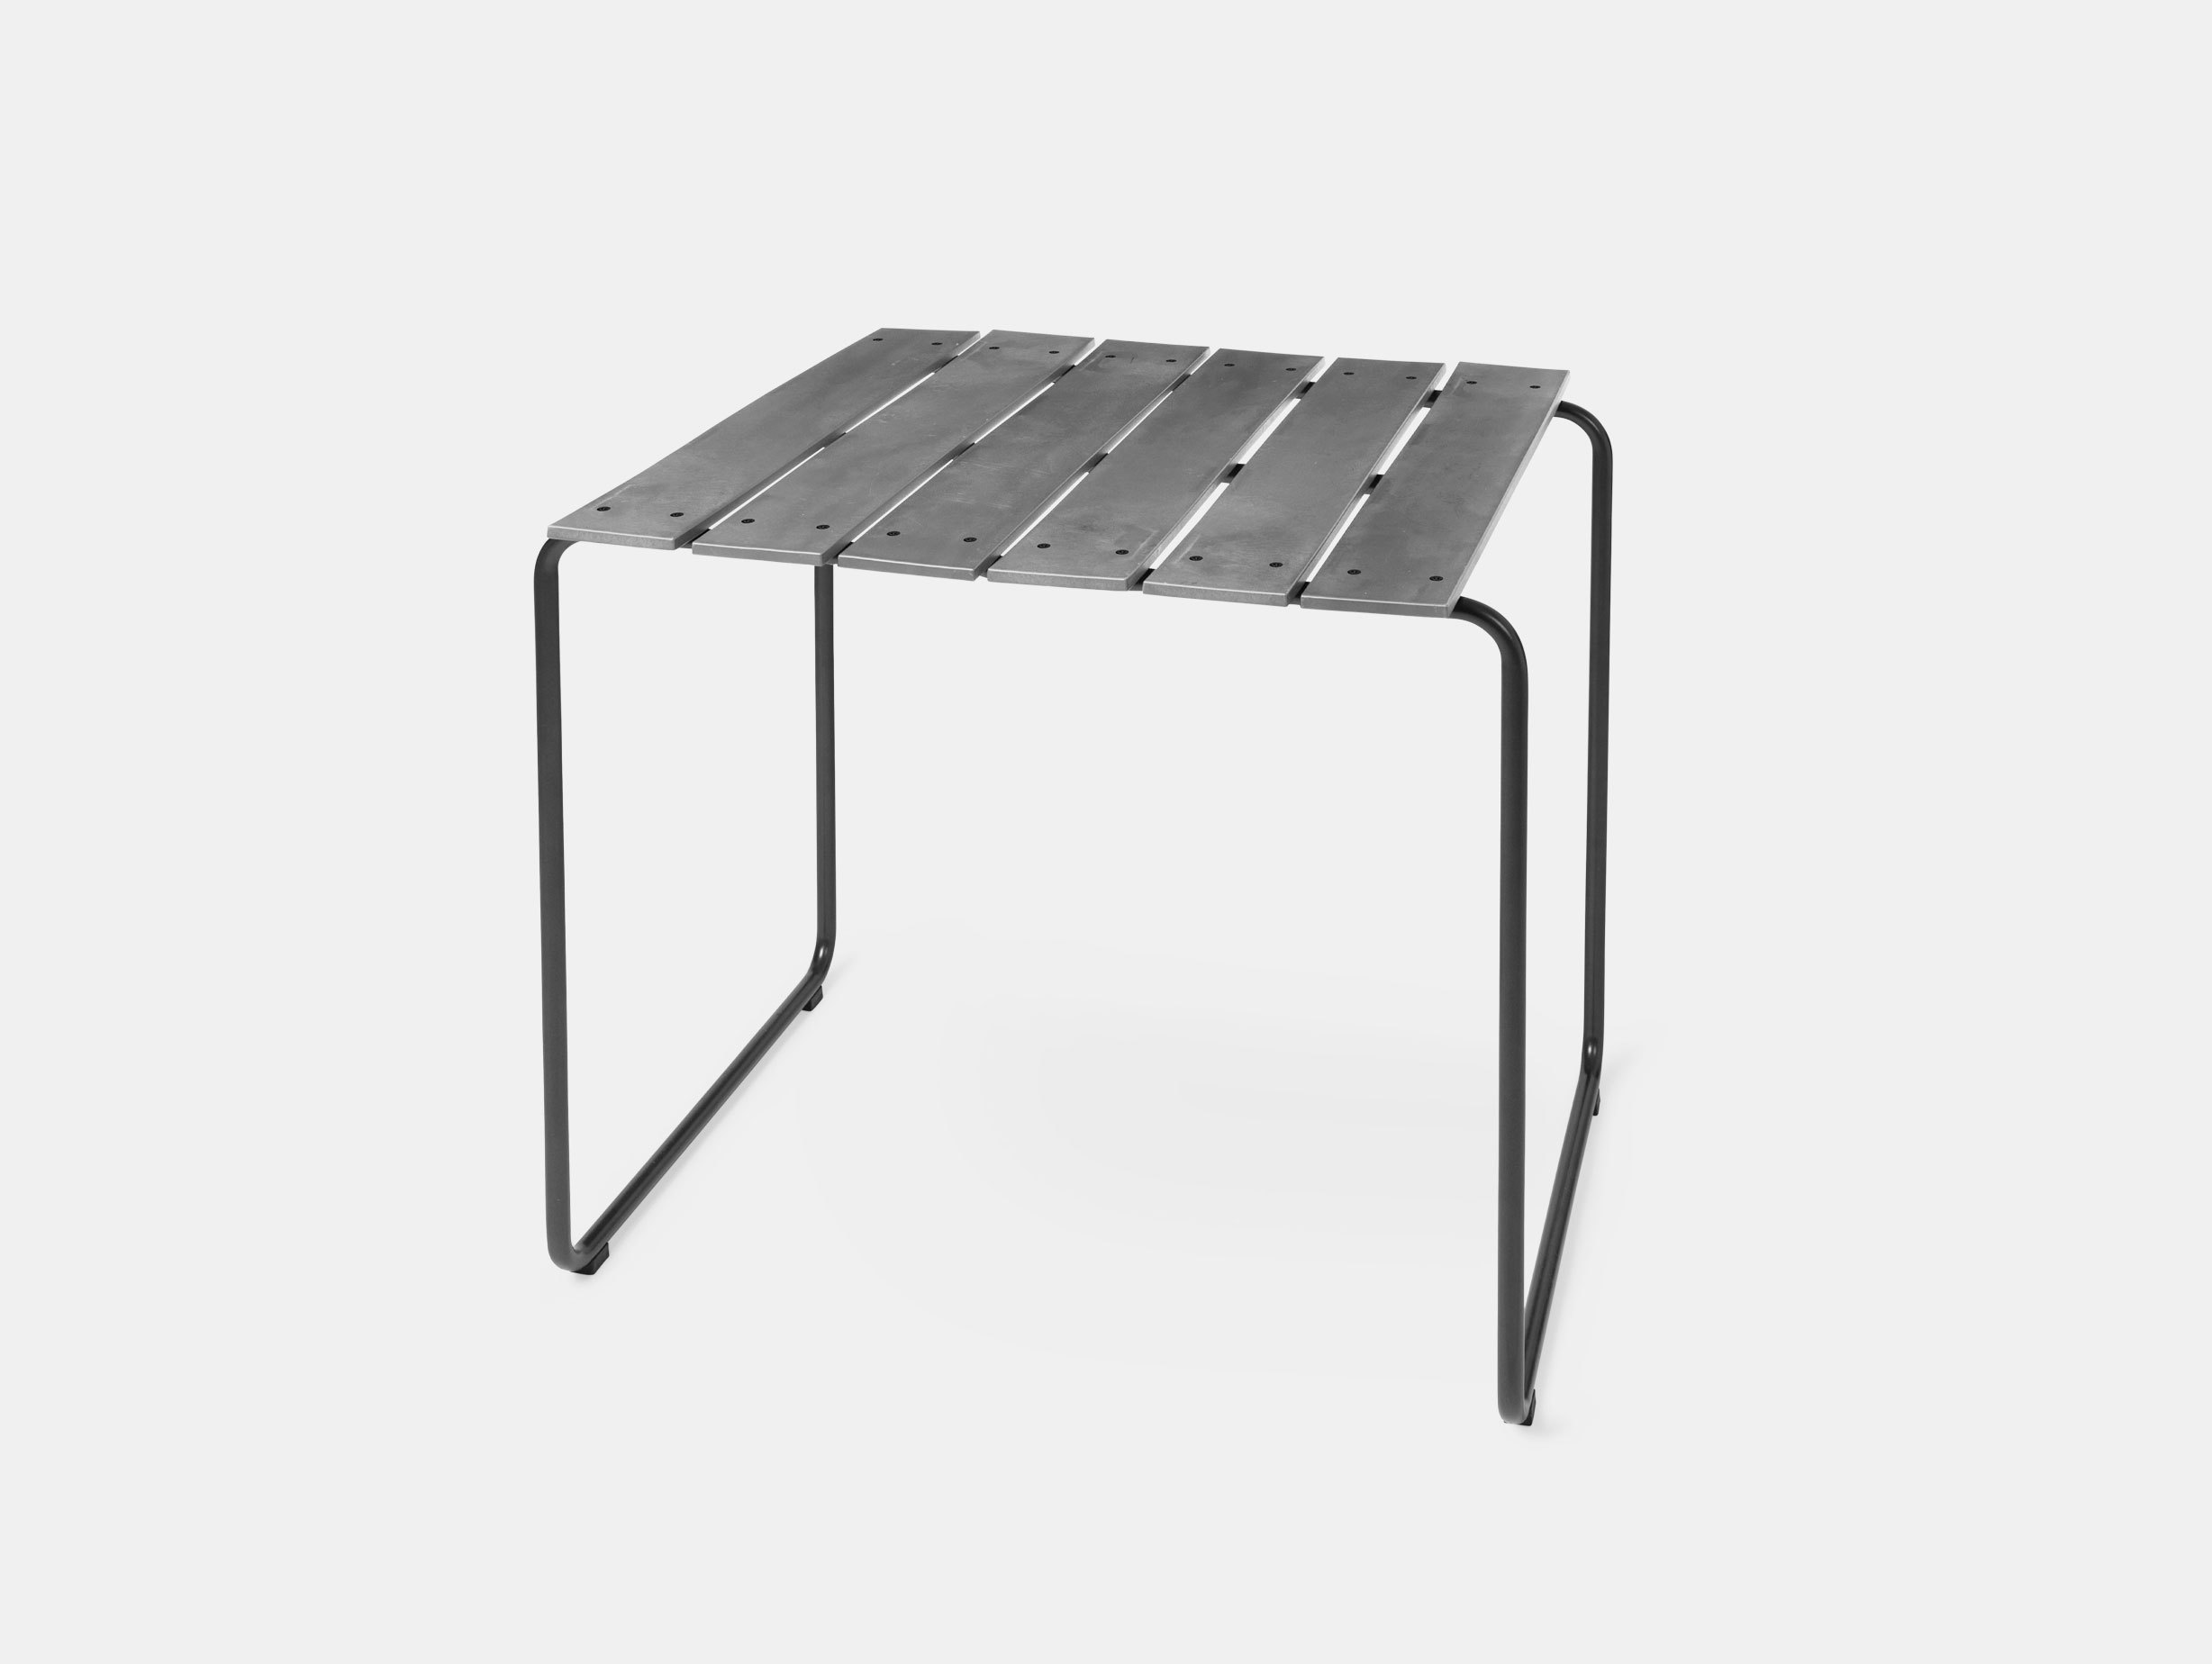 Mater Ocean Table 70X70 Concrete Grey Nanna Ditzel